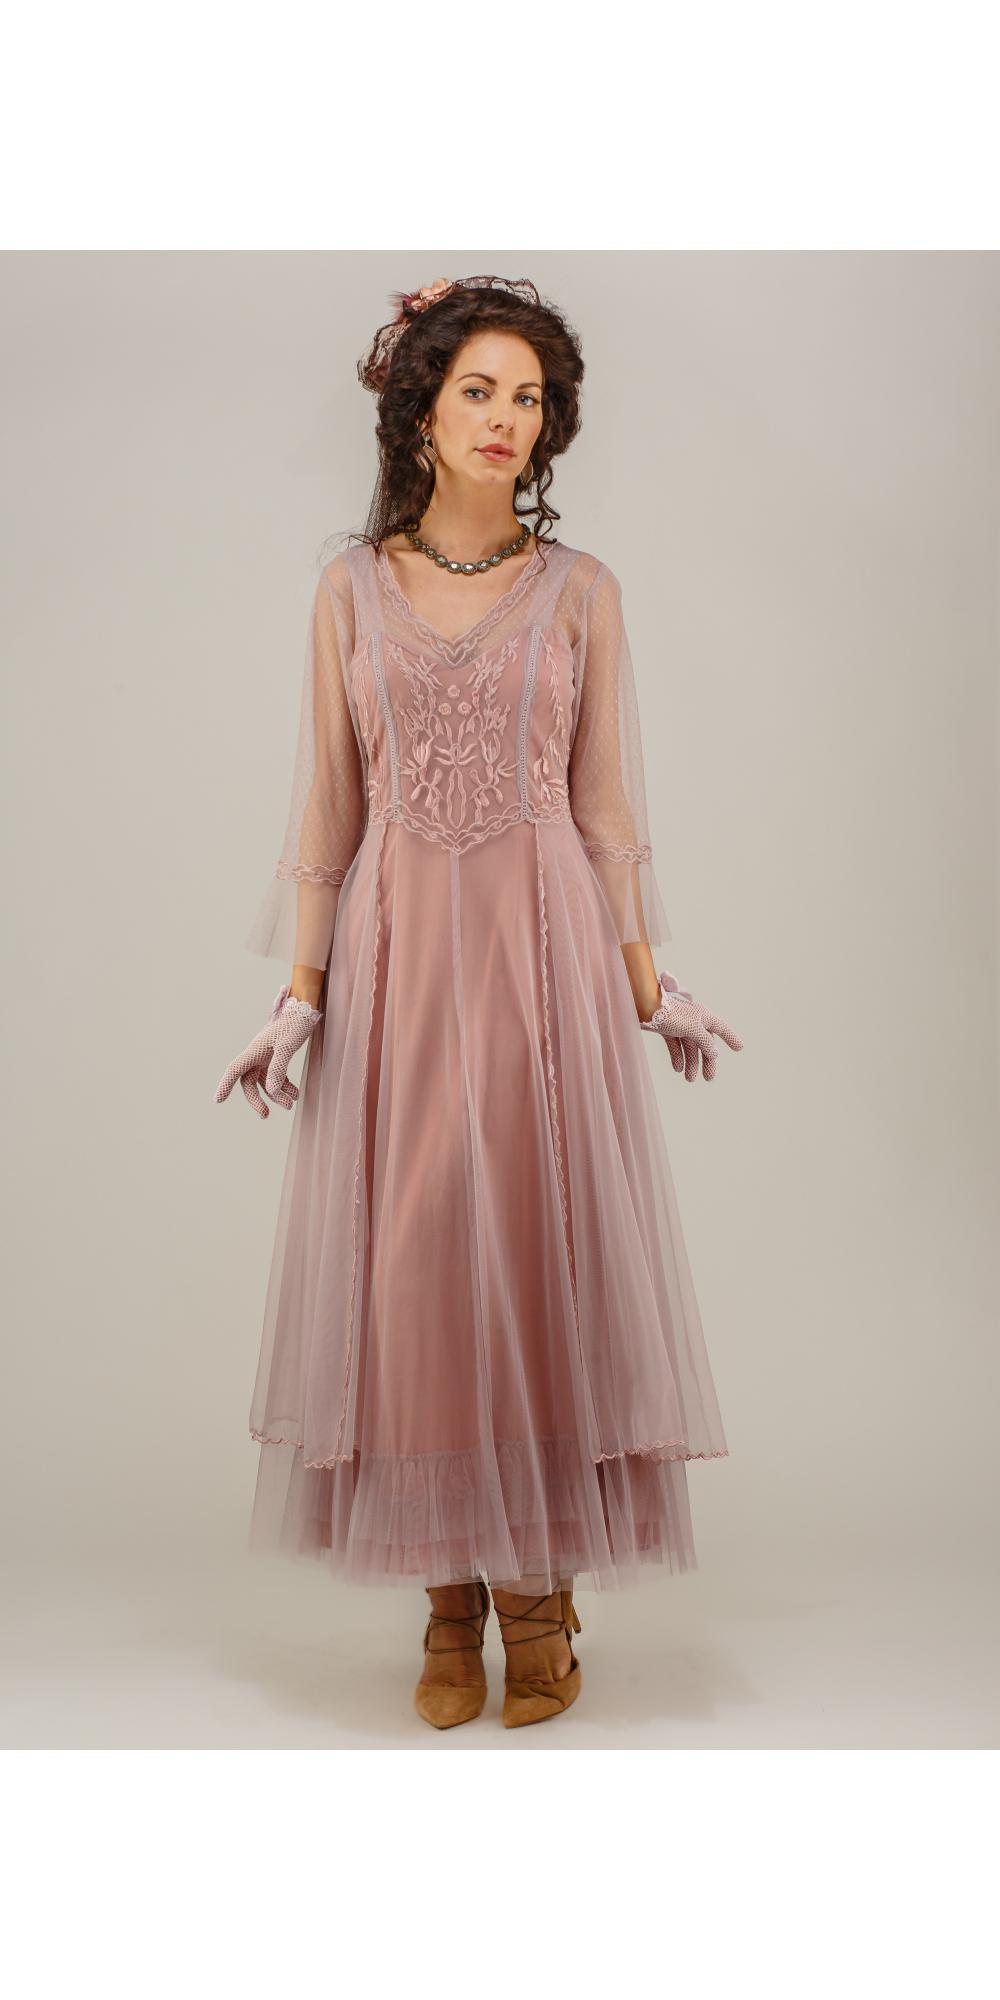 True Romance Nataya CL-075 Vintage Style Wedding Dress in Mauve